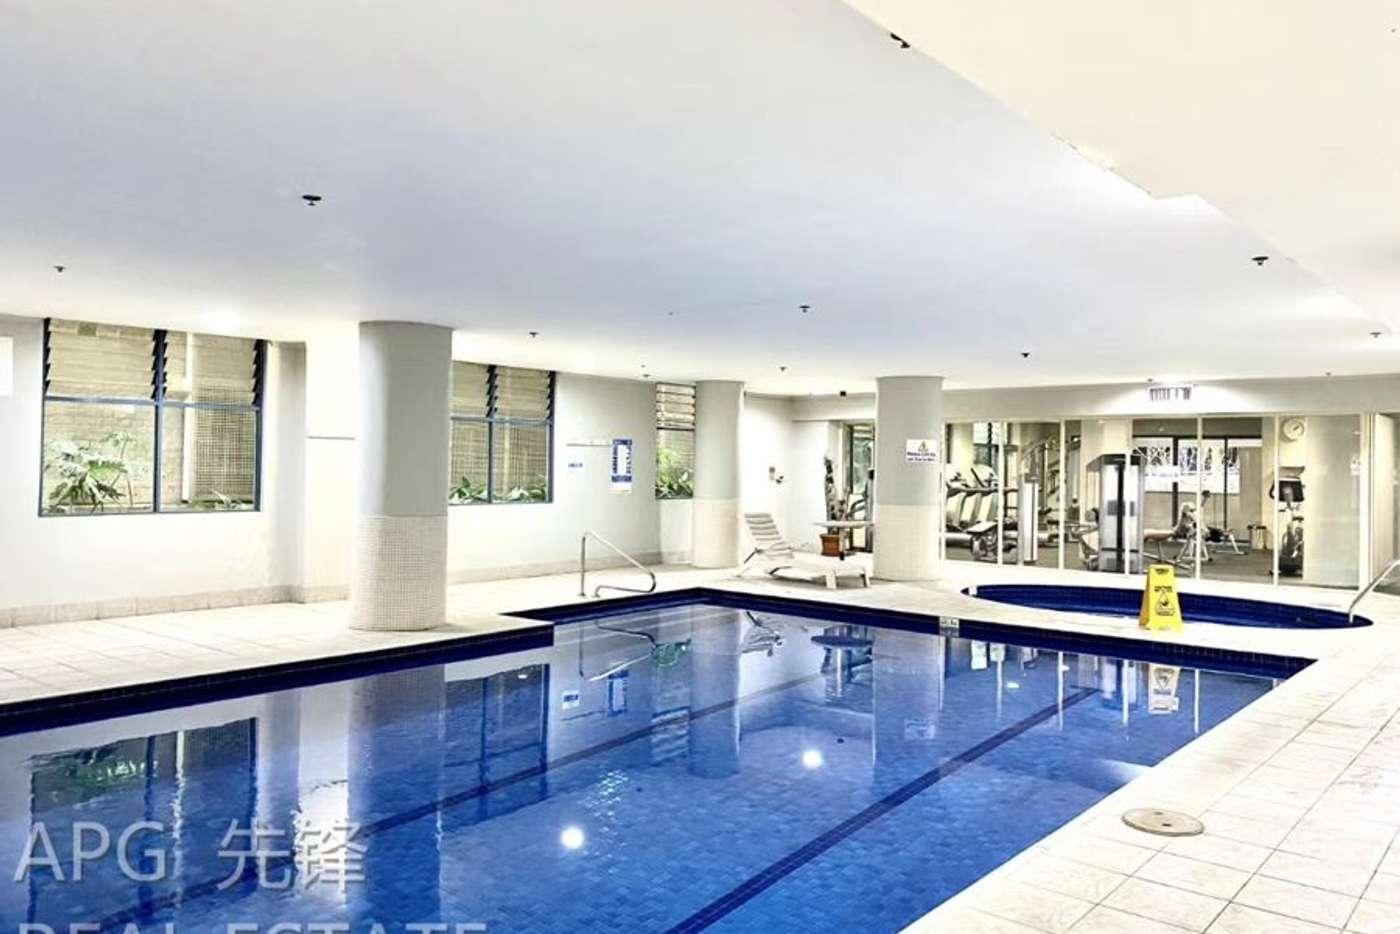 Main view of Homely apartment listing, 303-321 castlereagh st Haymarket, Haymarket NSW 2000